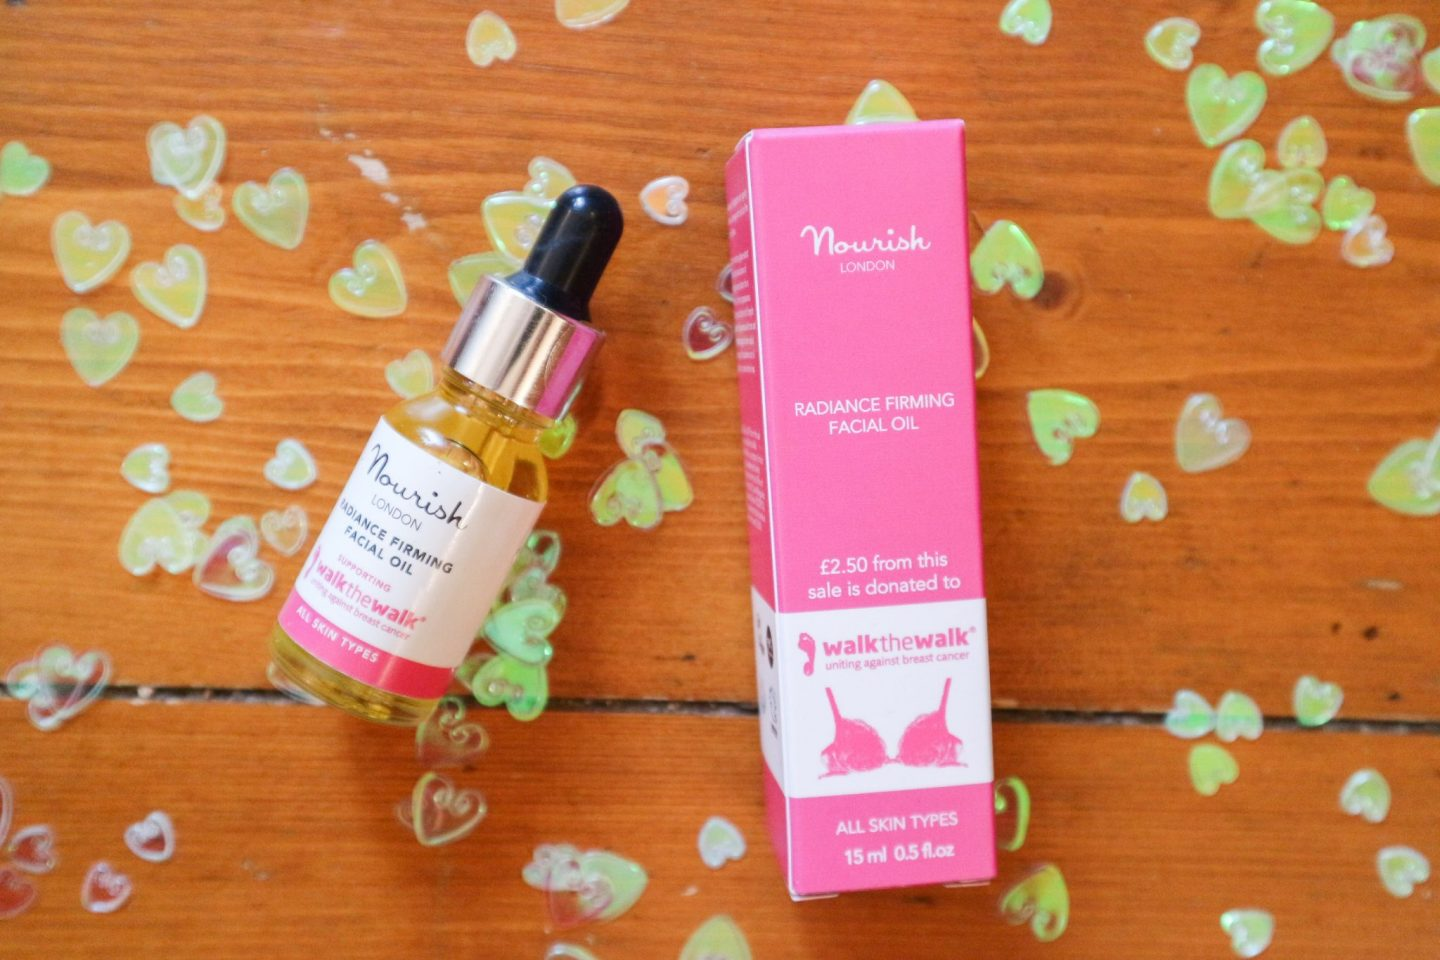 Nourish London Radiance Firming Facial Oil Walk the Walk Limited Edition